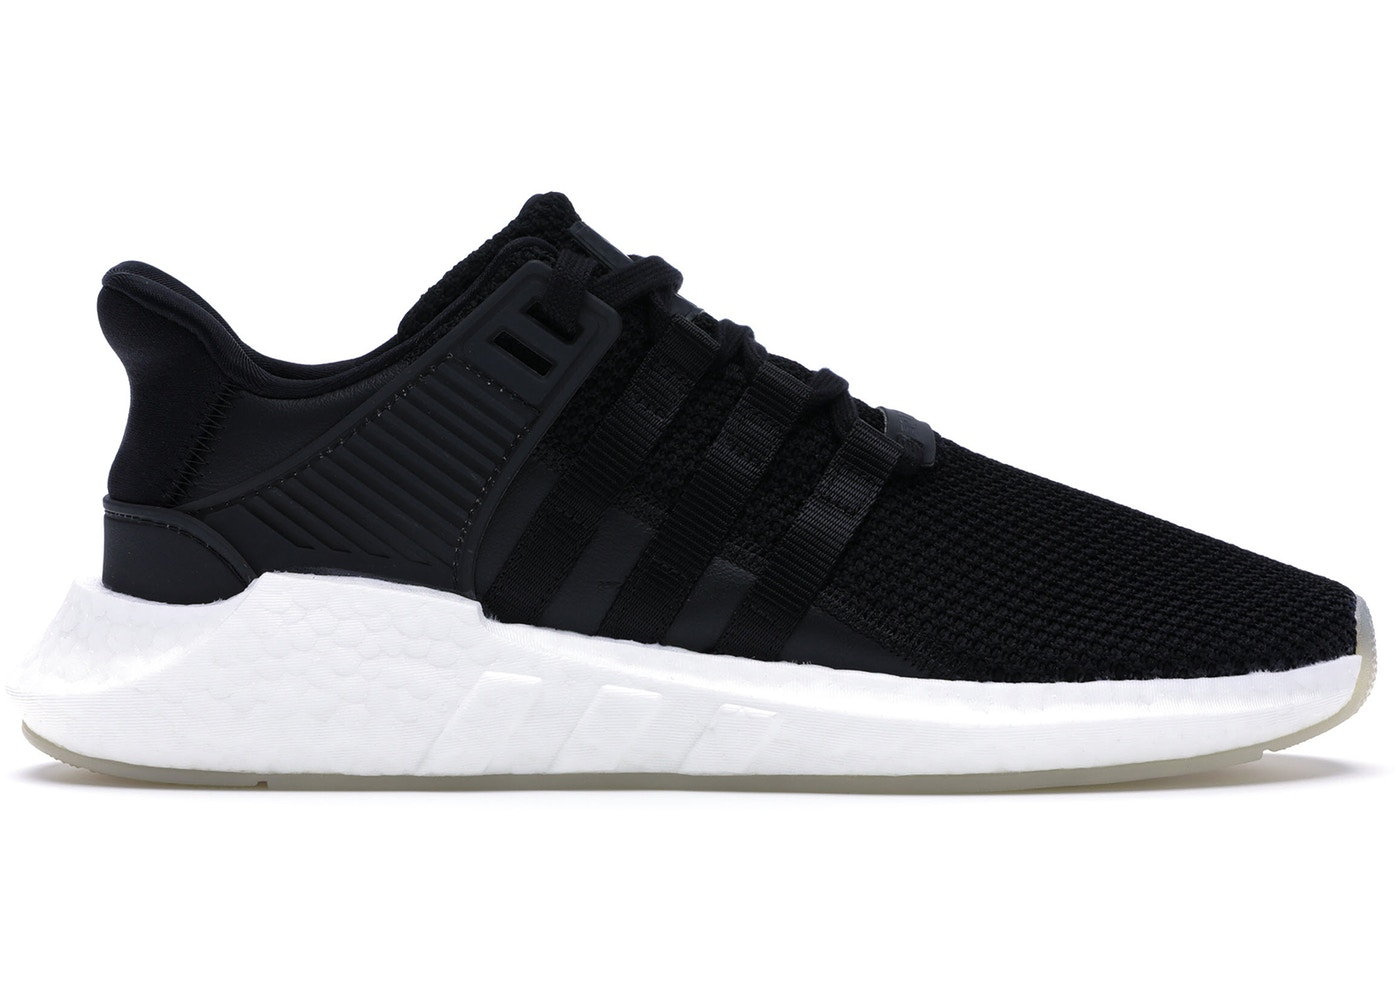 new arrival ffda9 aaf90 adidas EQT Support 93/17 Core Black